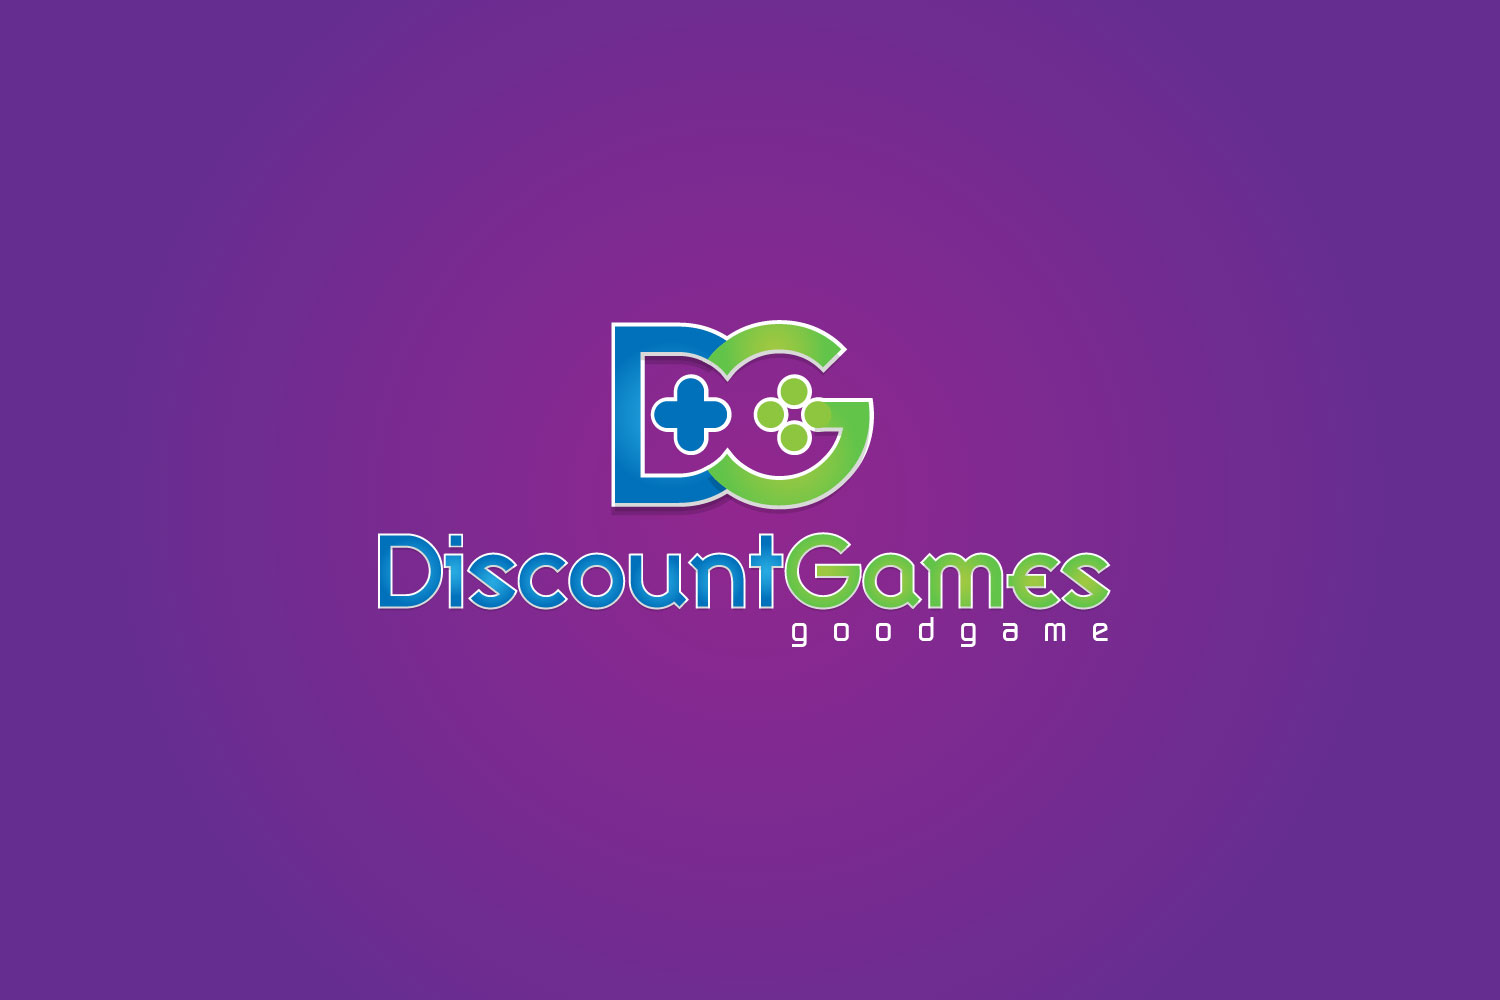 Discounted Games – Gaming Website Logo